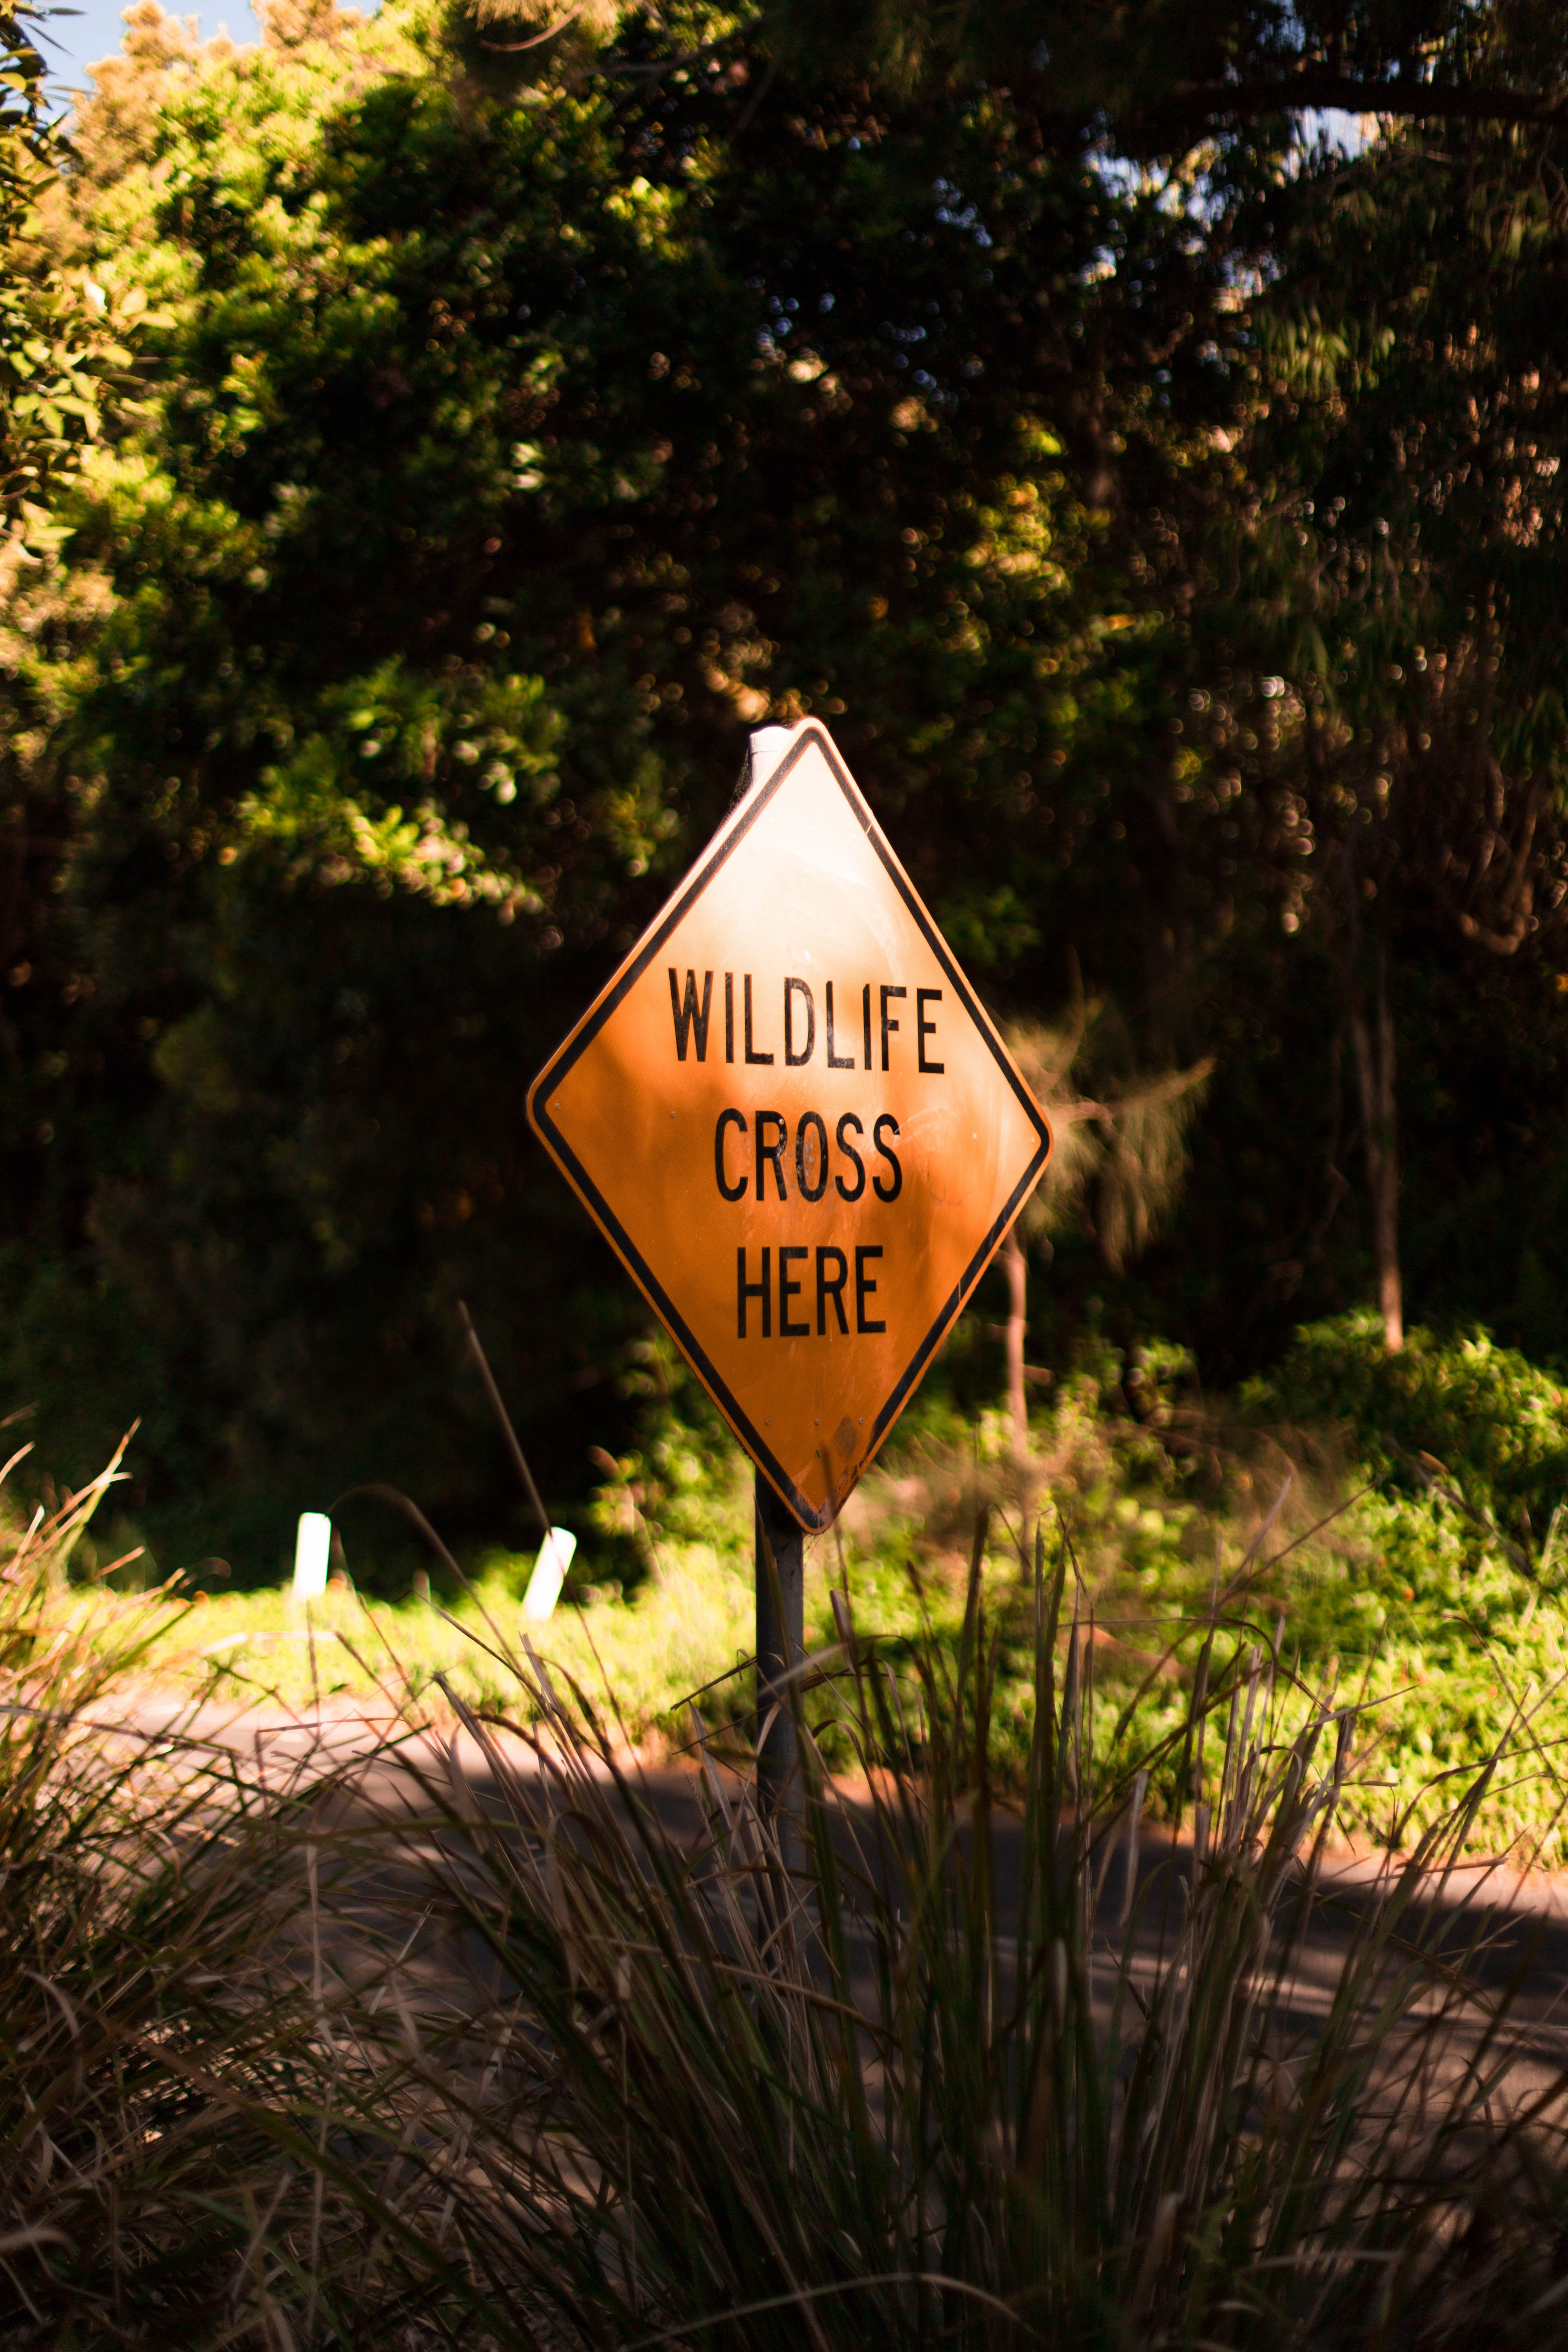 A yellow road sign warns motorist that wildlife animals use this part of the road for crossing | Photo: Unsplash/ Yoann Laheurte